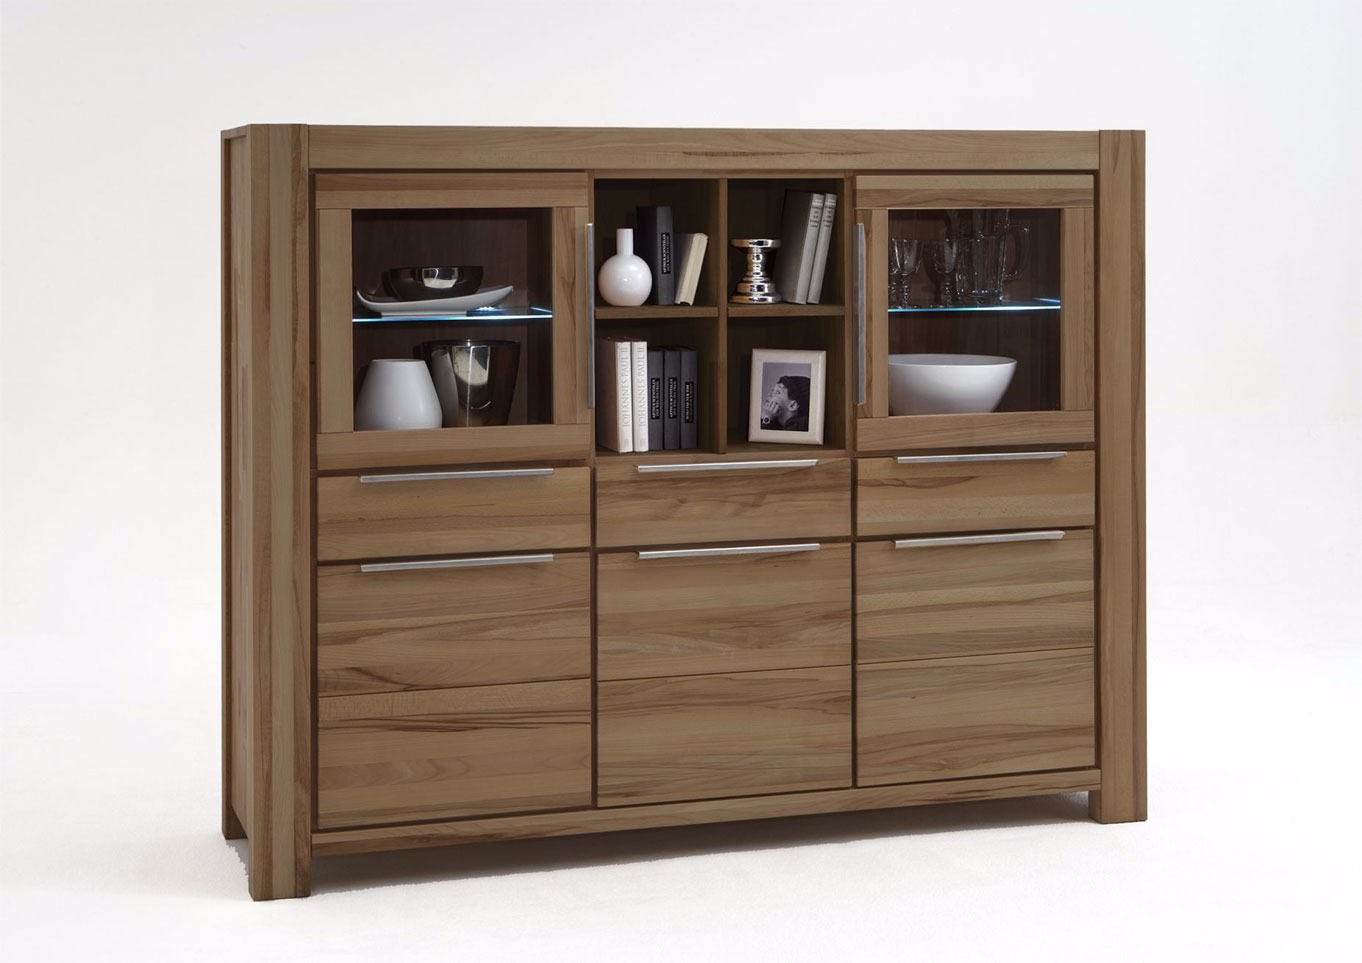 Elfo Highboard Nena aus Massivholz